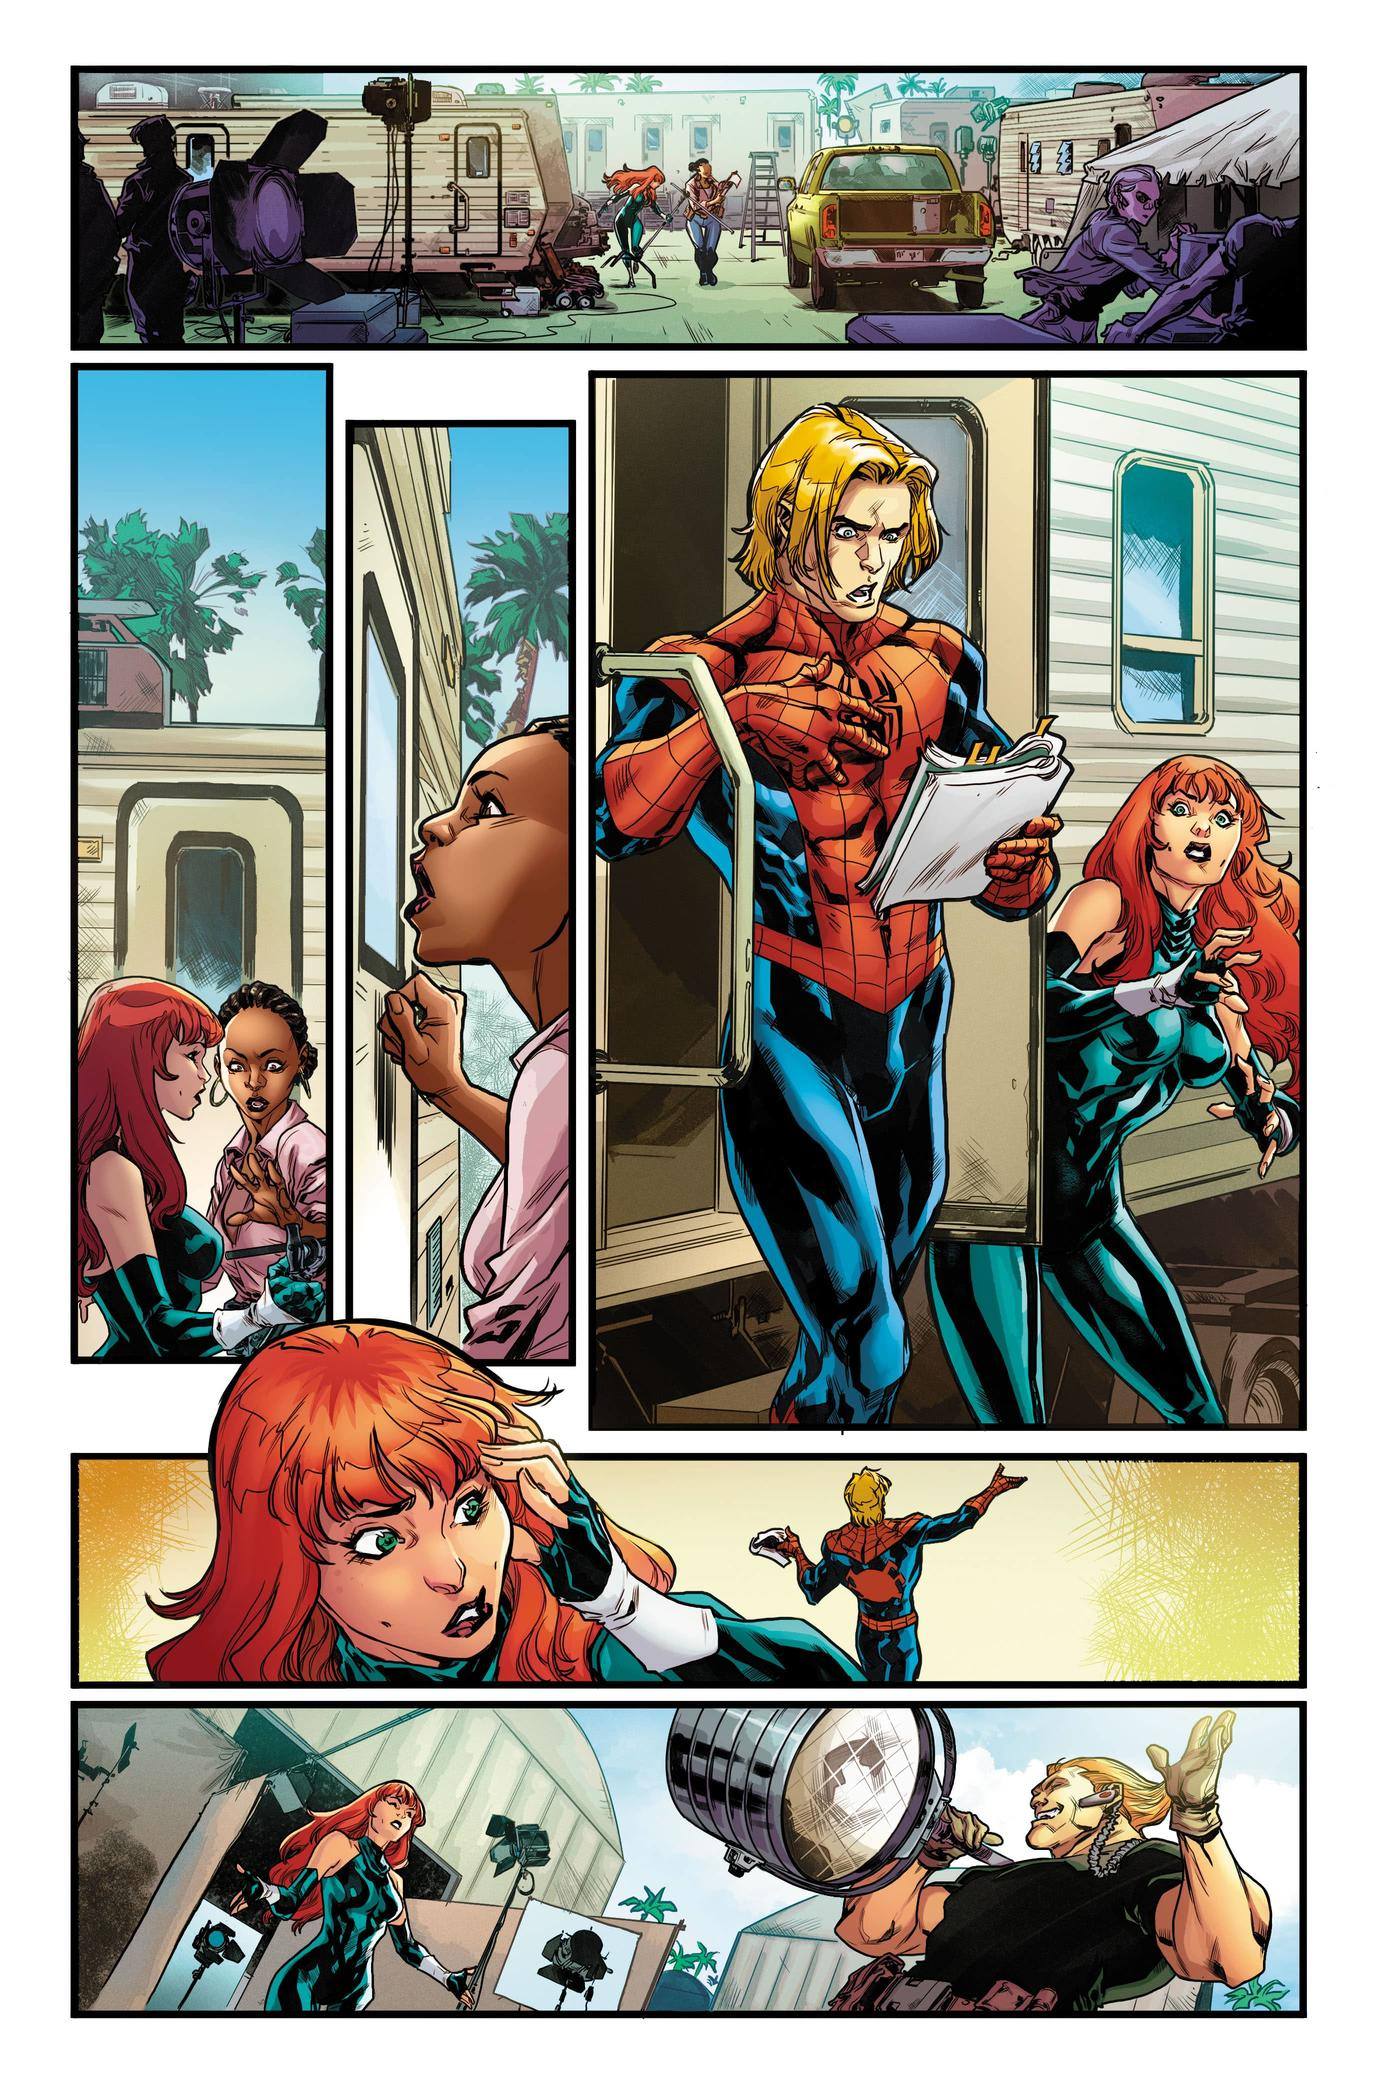 Page from Amazing Mary Jane #1